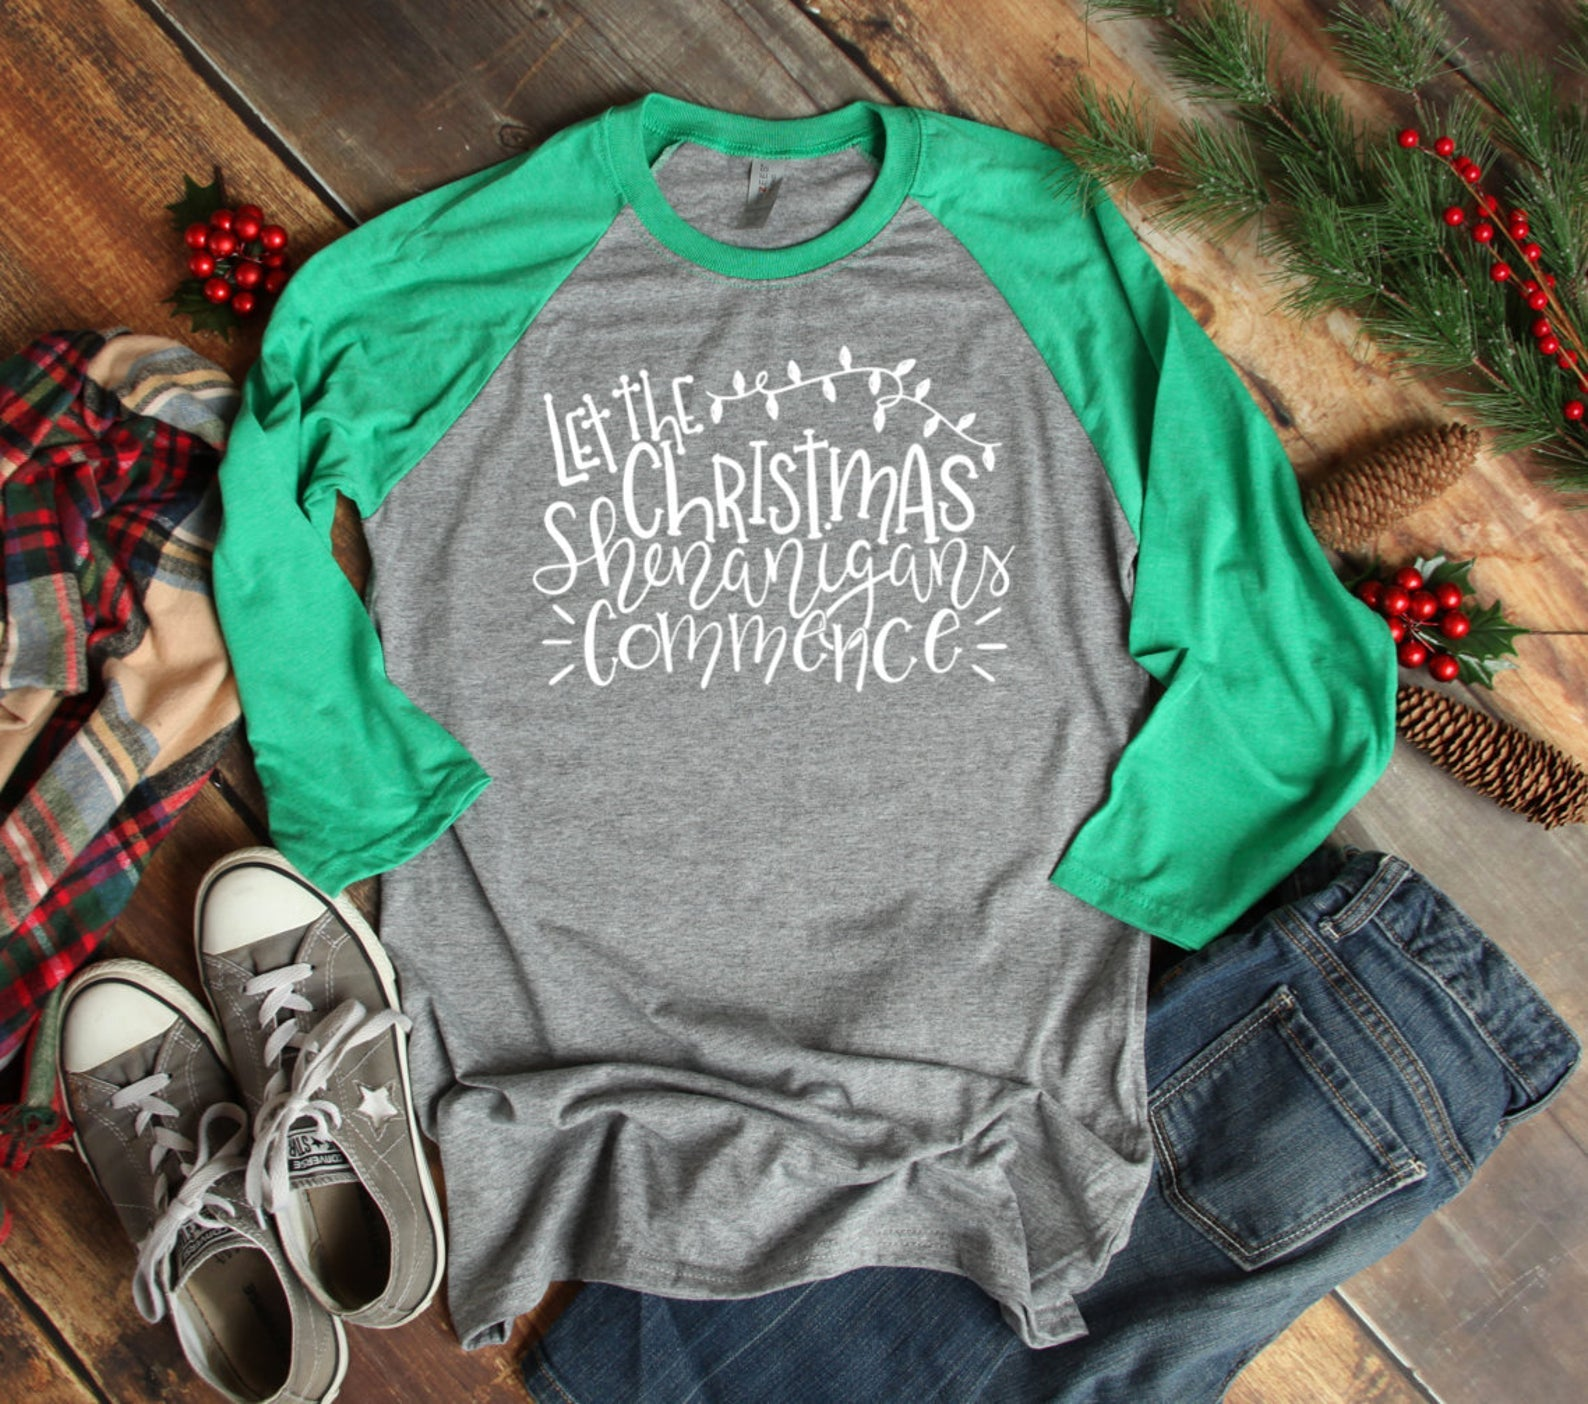 Let The Christmas Shenanigans Commence 3/4 Sleeve T-shirt - Christmas Shirt - Chaos T-shirt - Christmas Family Tee - Christmas T Shirt